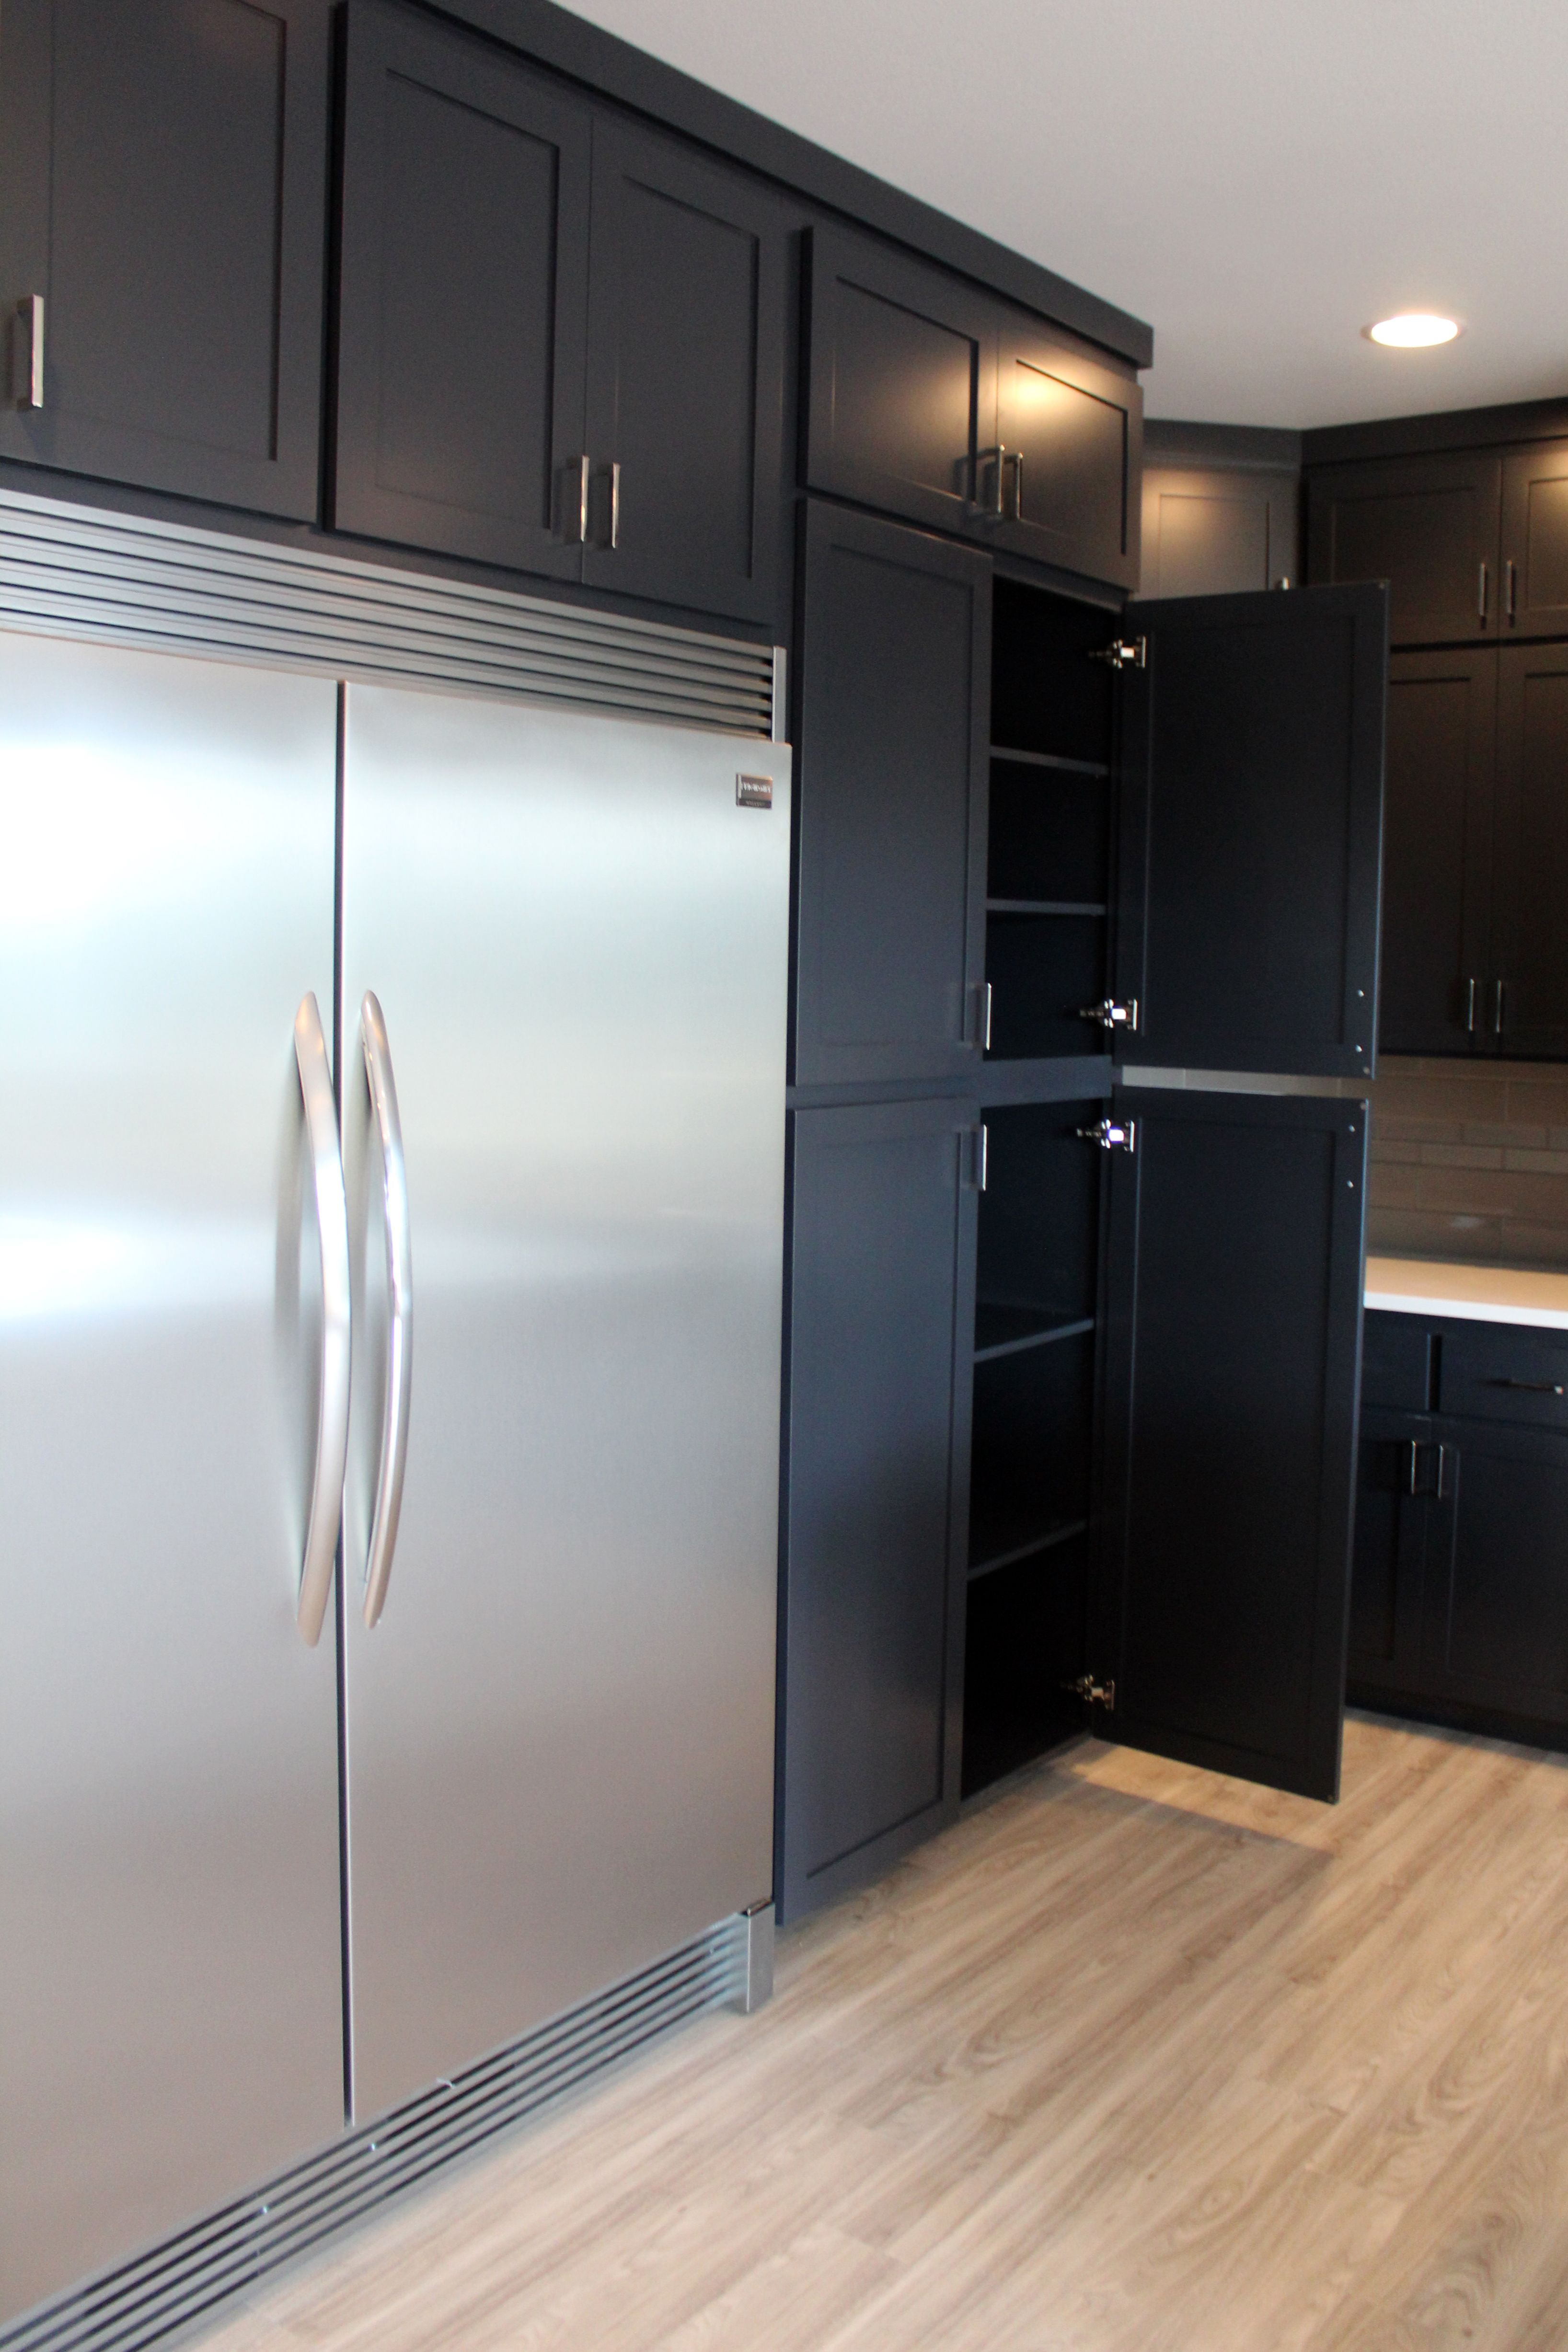 Black Painted Kitchen Cabinets Sideside Freezer And Pleasing Cabinet Design Kitchen Design Ideas